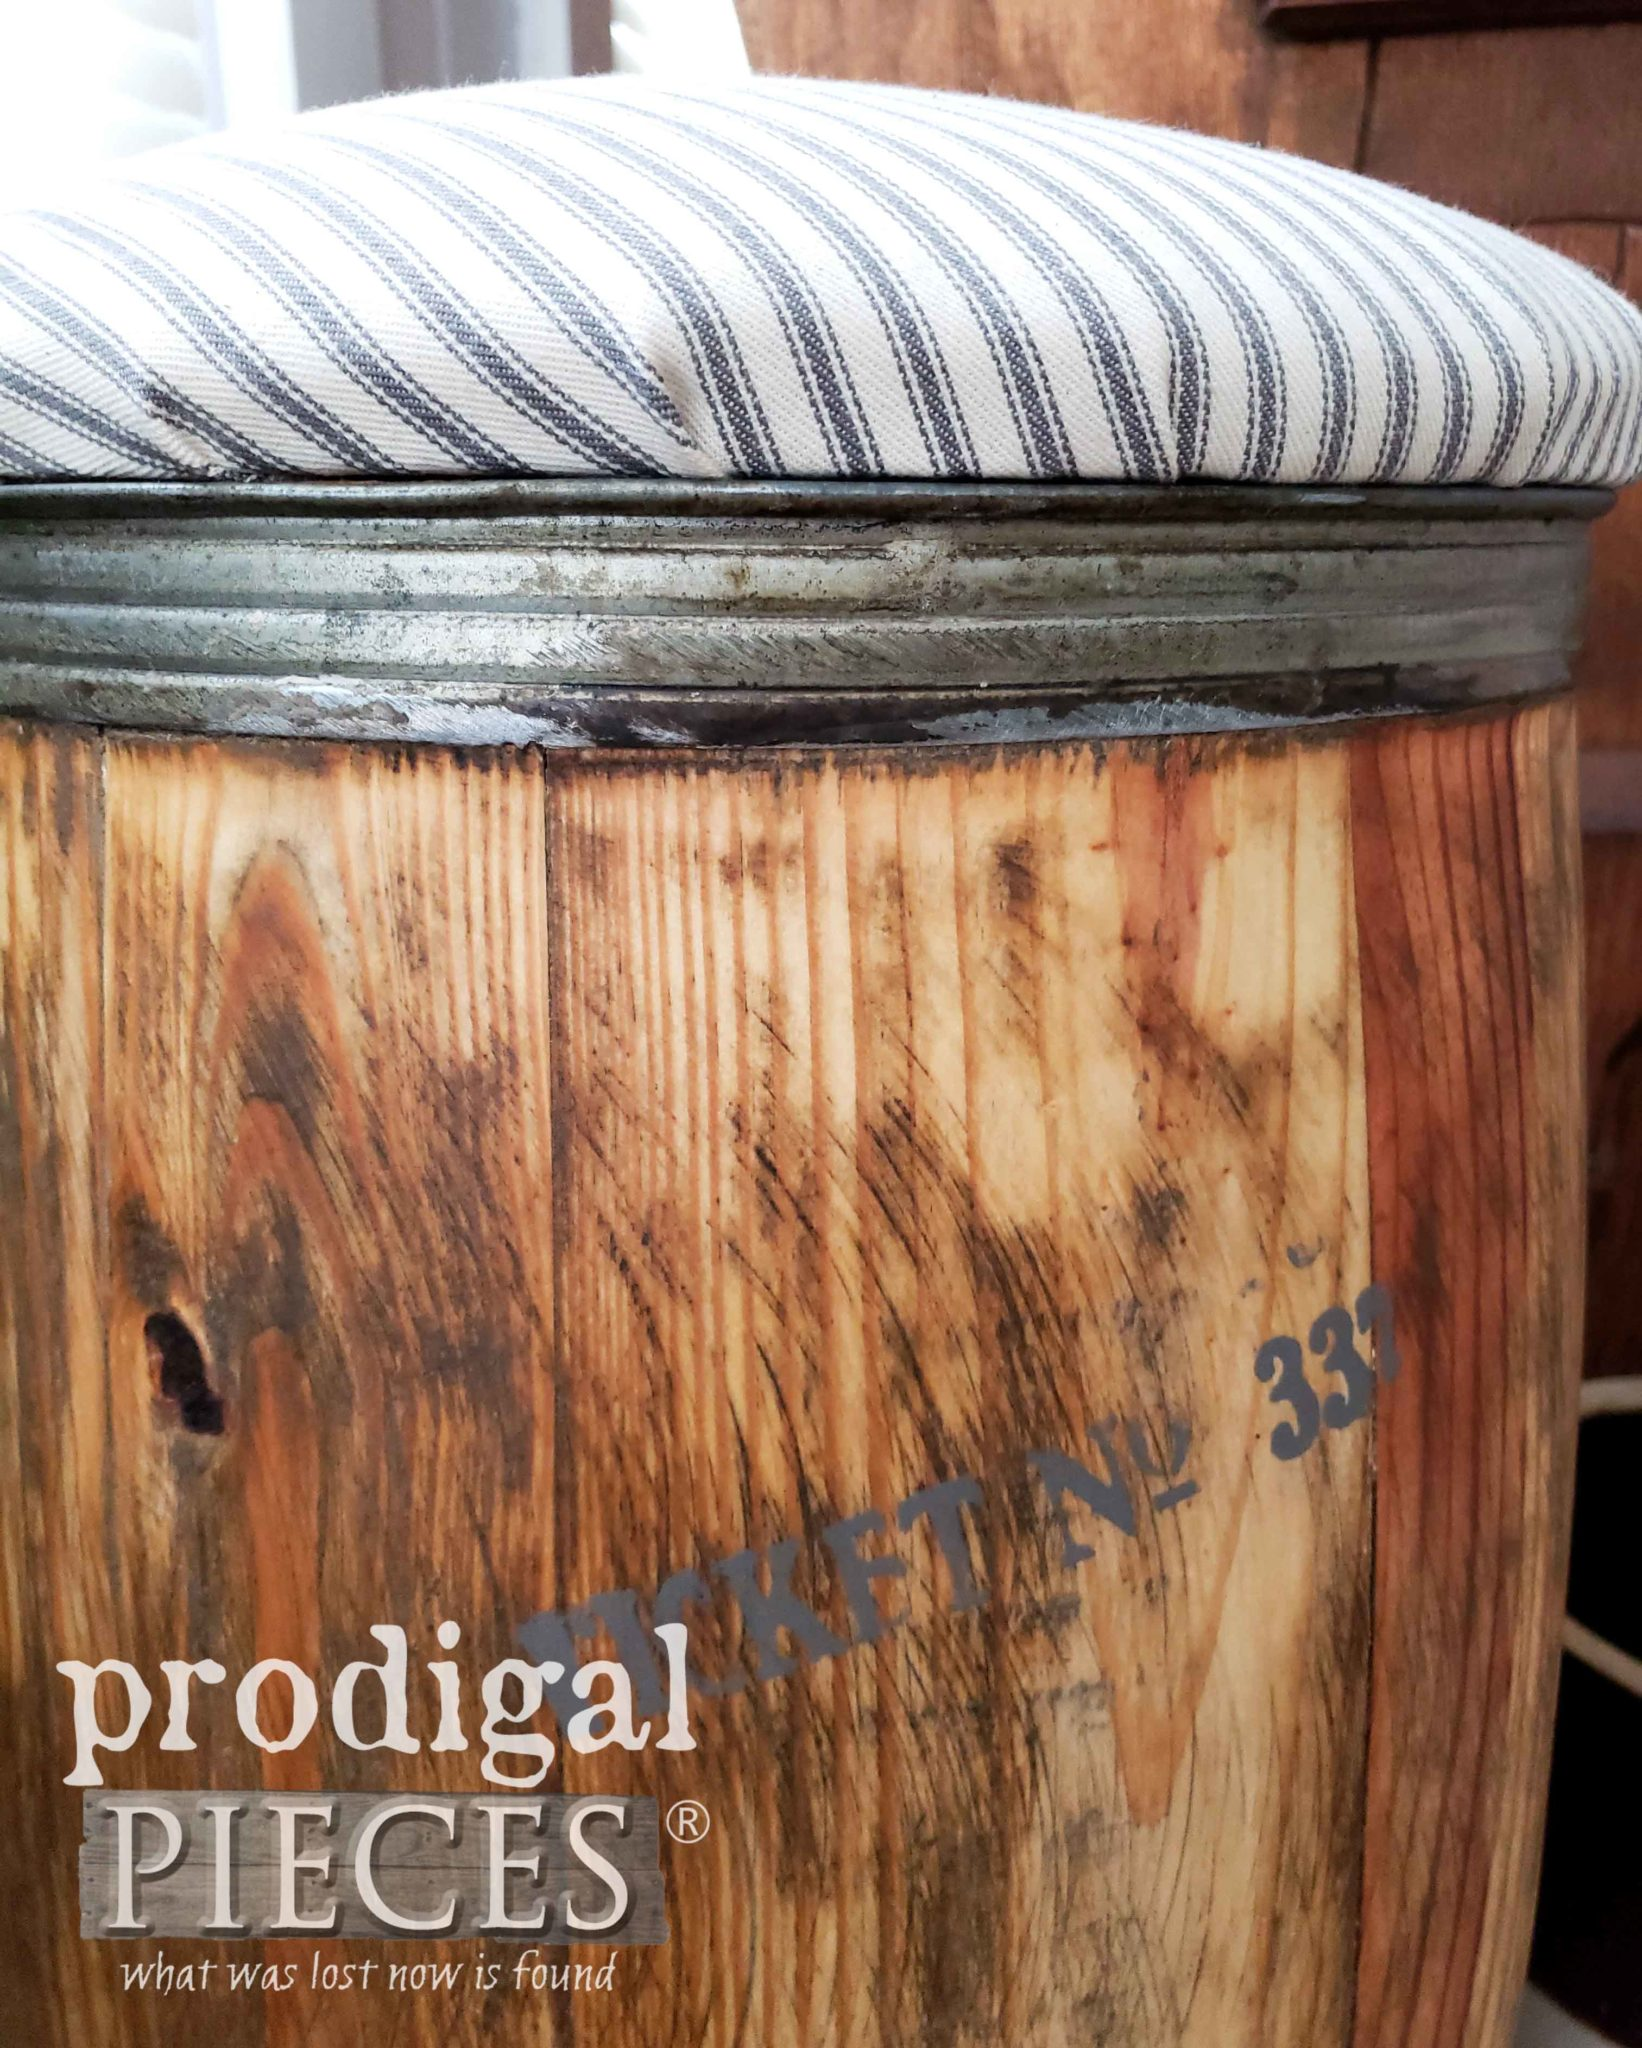 Industrial Style Nail Barrel Stool for Farmhouse Decor by Larissa of Prodigal Pieces | prodigalpieces.com